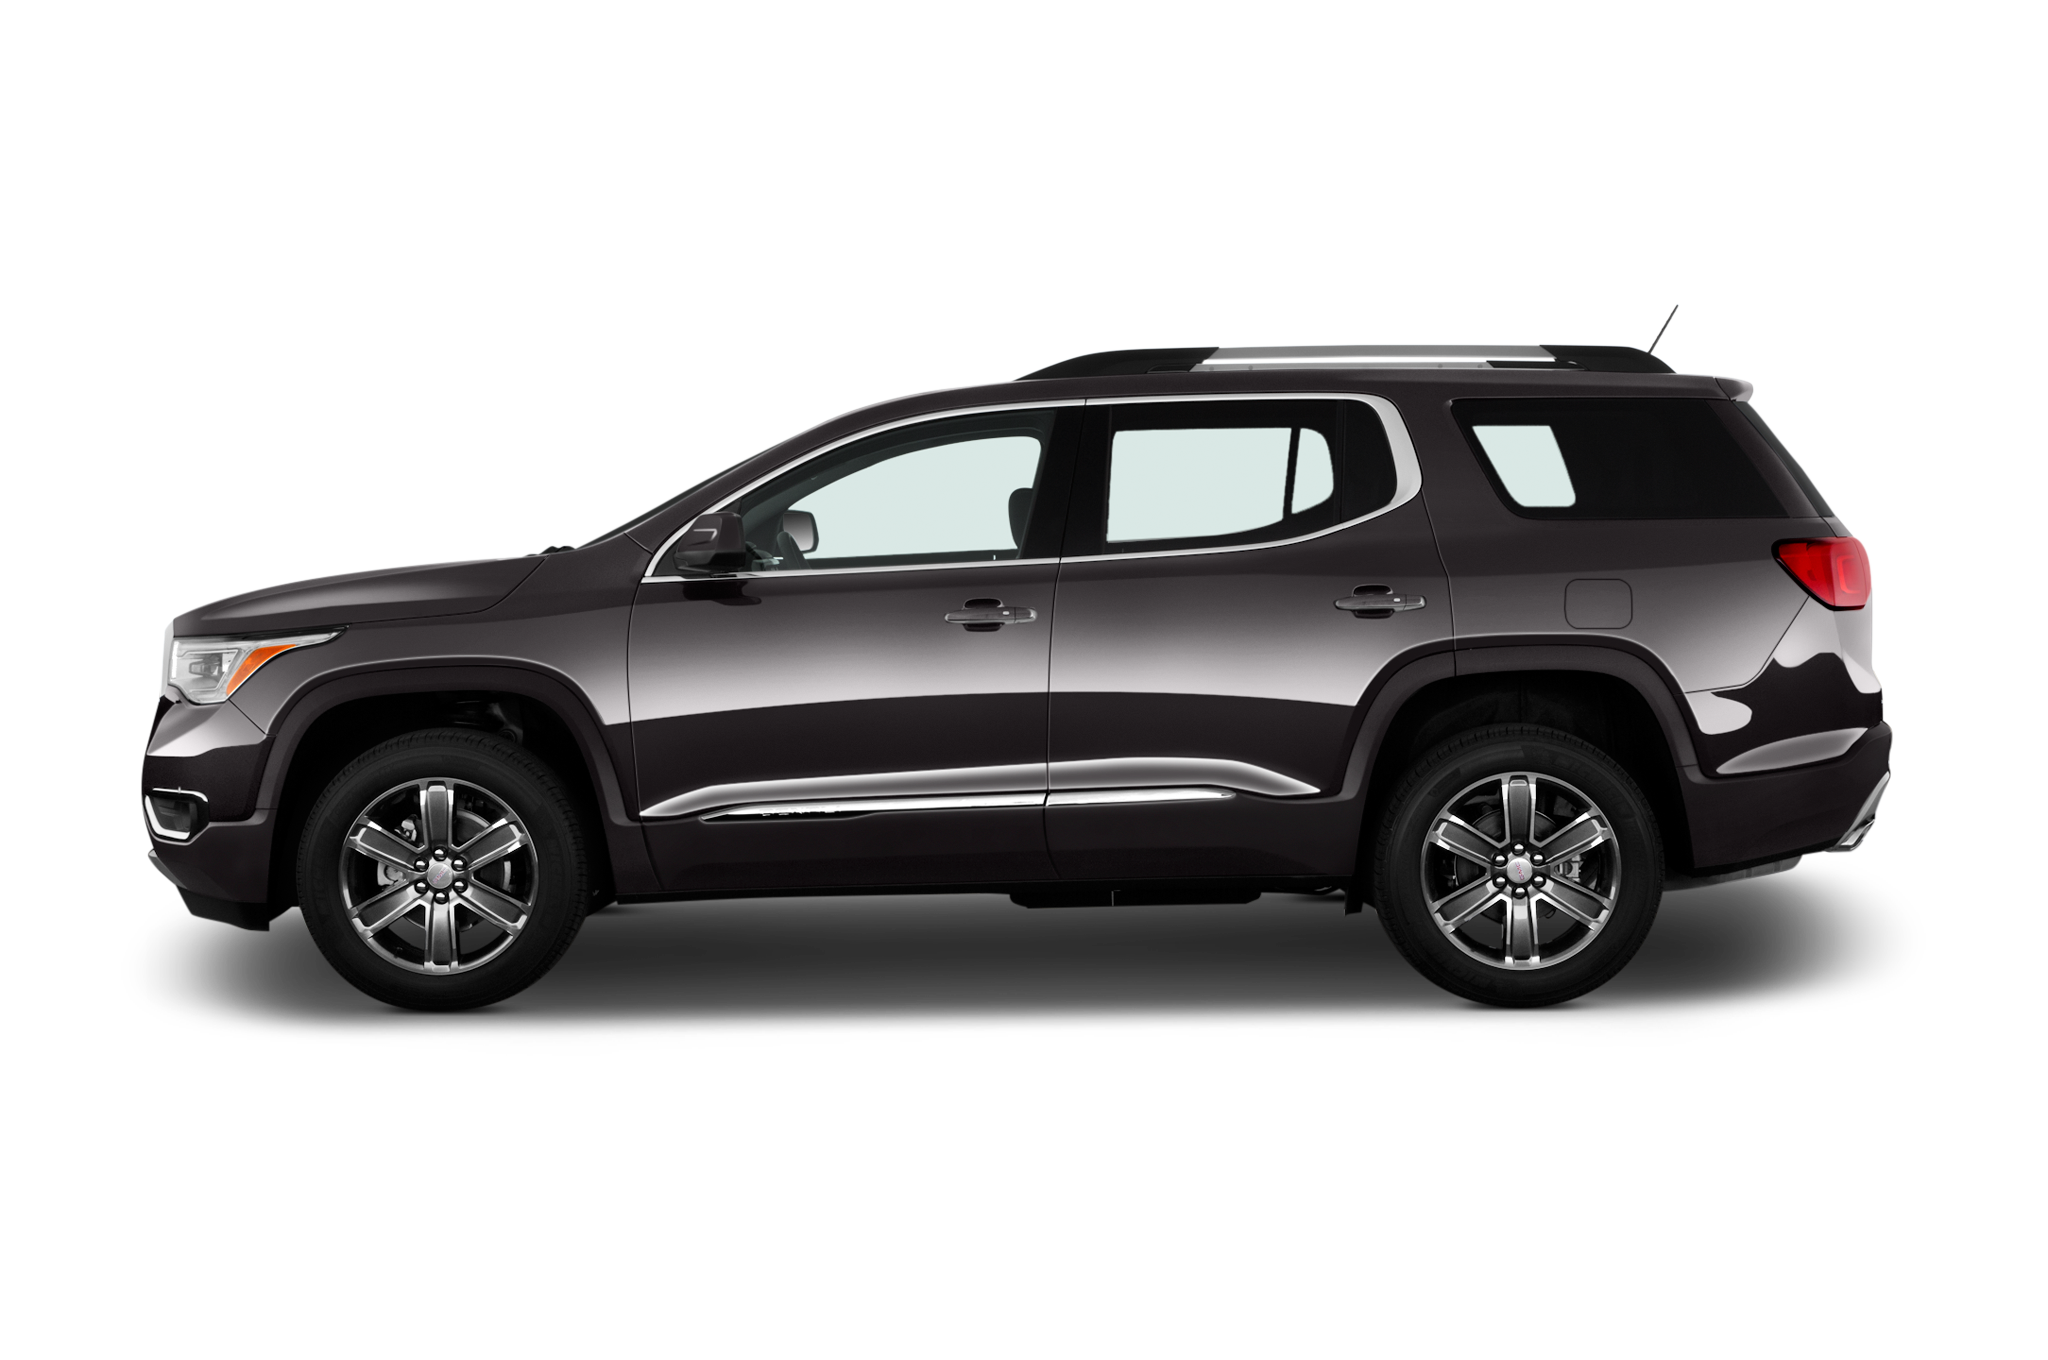 2017 gmc acadia priced from 29 995 to 47 845 automobile magazine. Black Bedroom Furniture Sets. Home Design Ideas